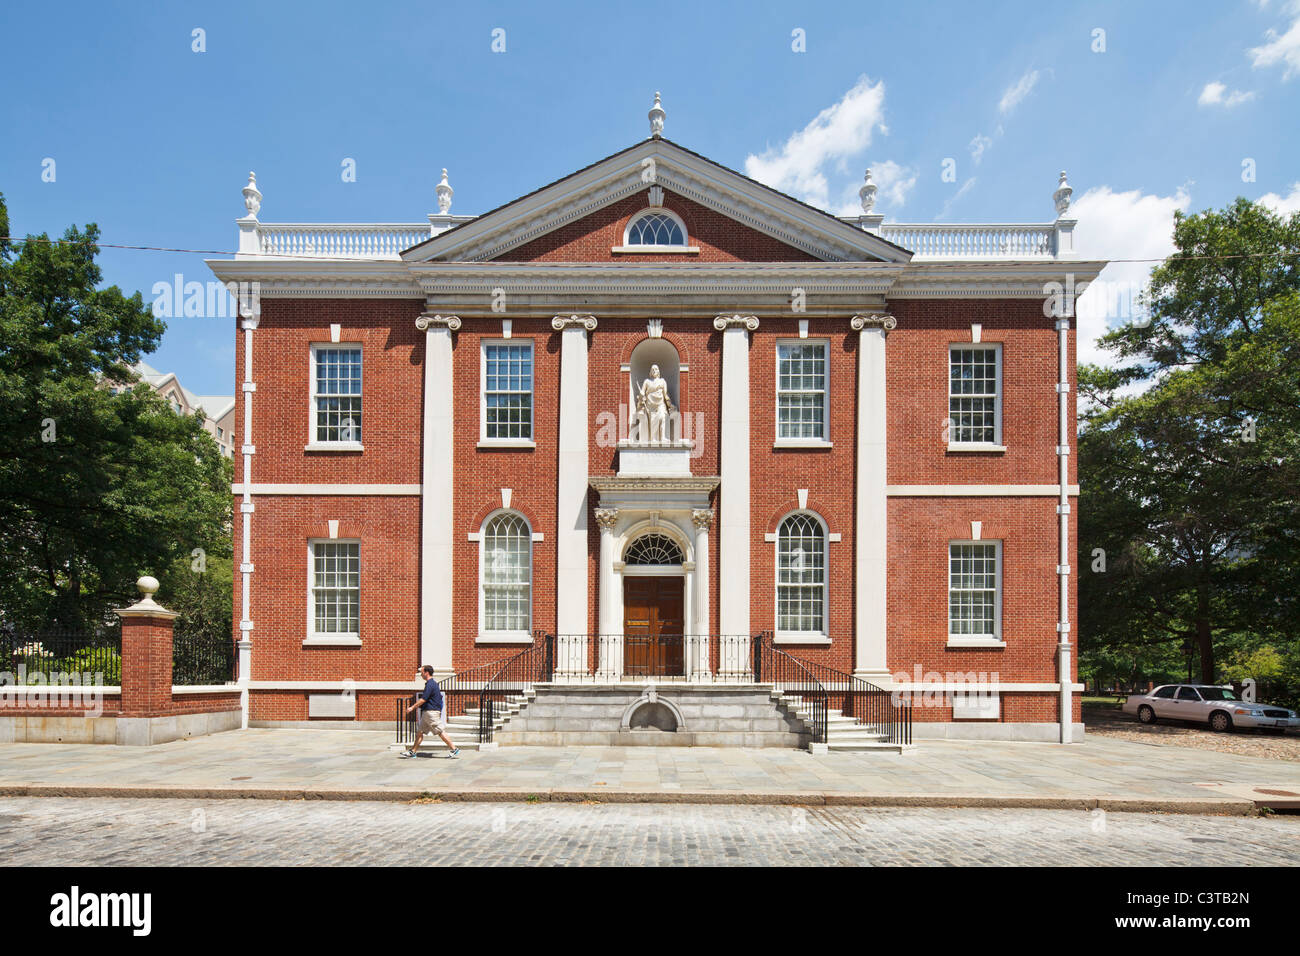 American Philosophical Society Library, Philadelphia - Stock Image